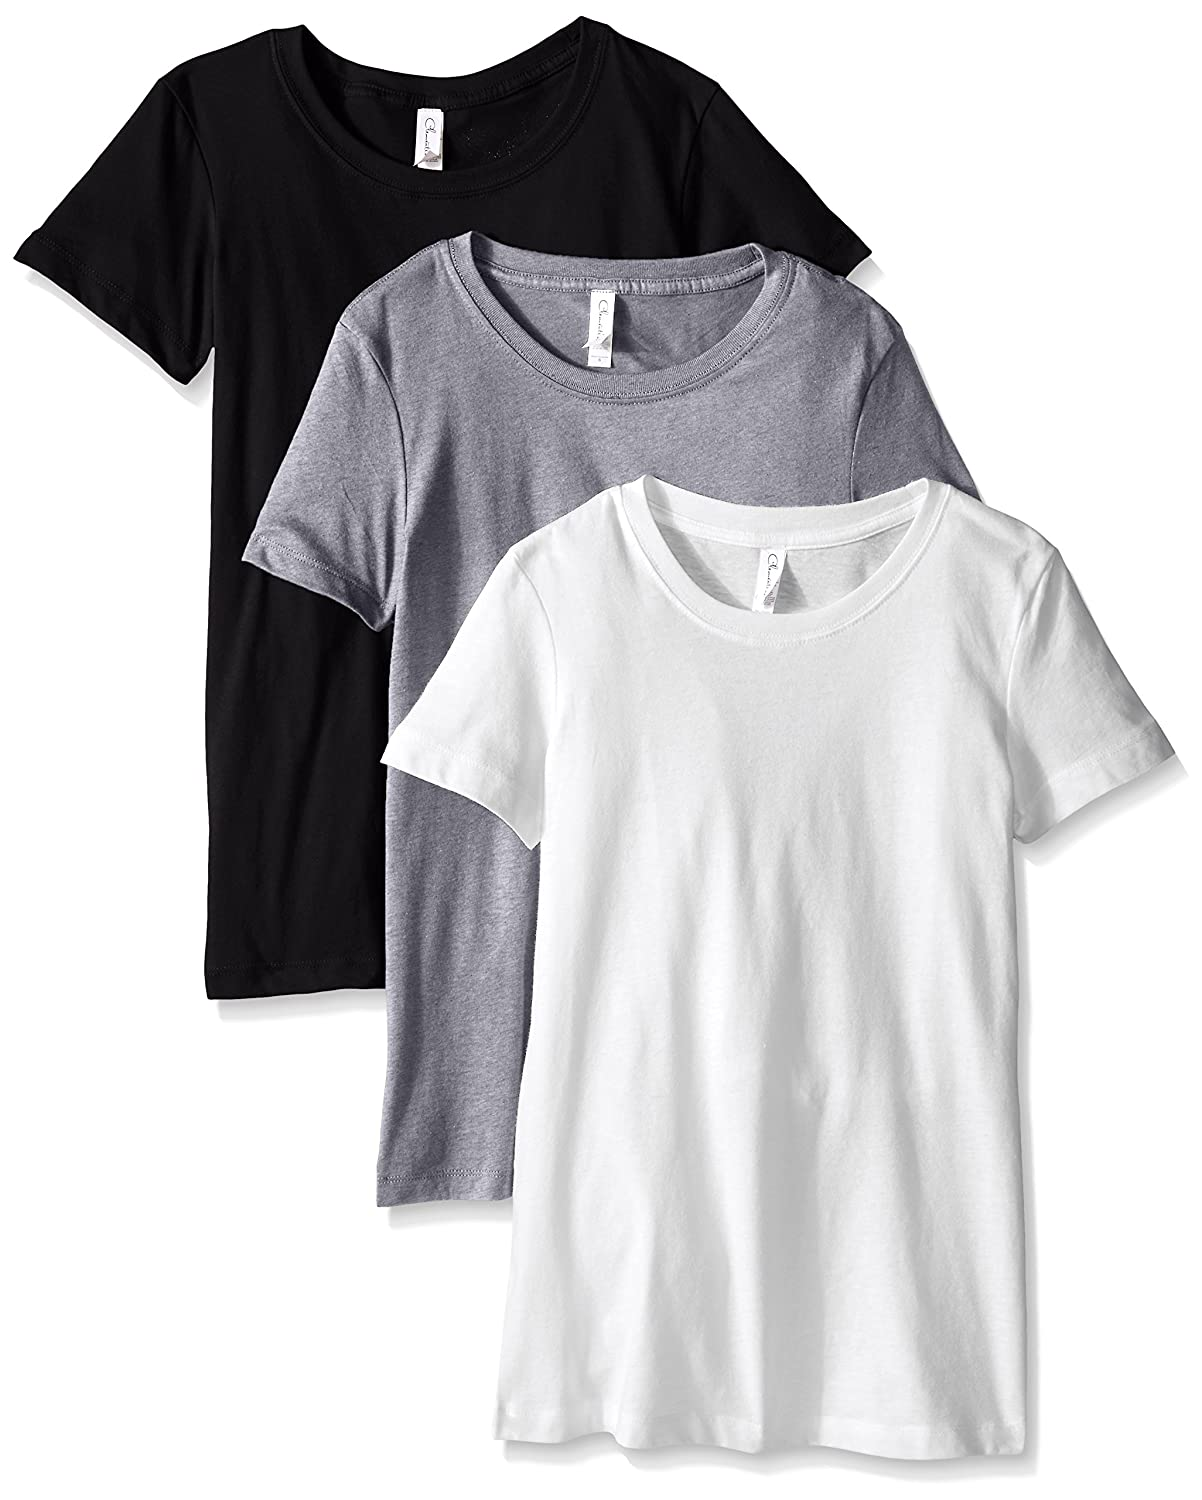 Clementine Apparel Women's 3 Pack Short Sleeve T Shirt Easy Tag V Neck Soft Cotton Blend Undershirts (1510) by Clementine Apparel